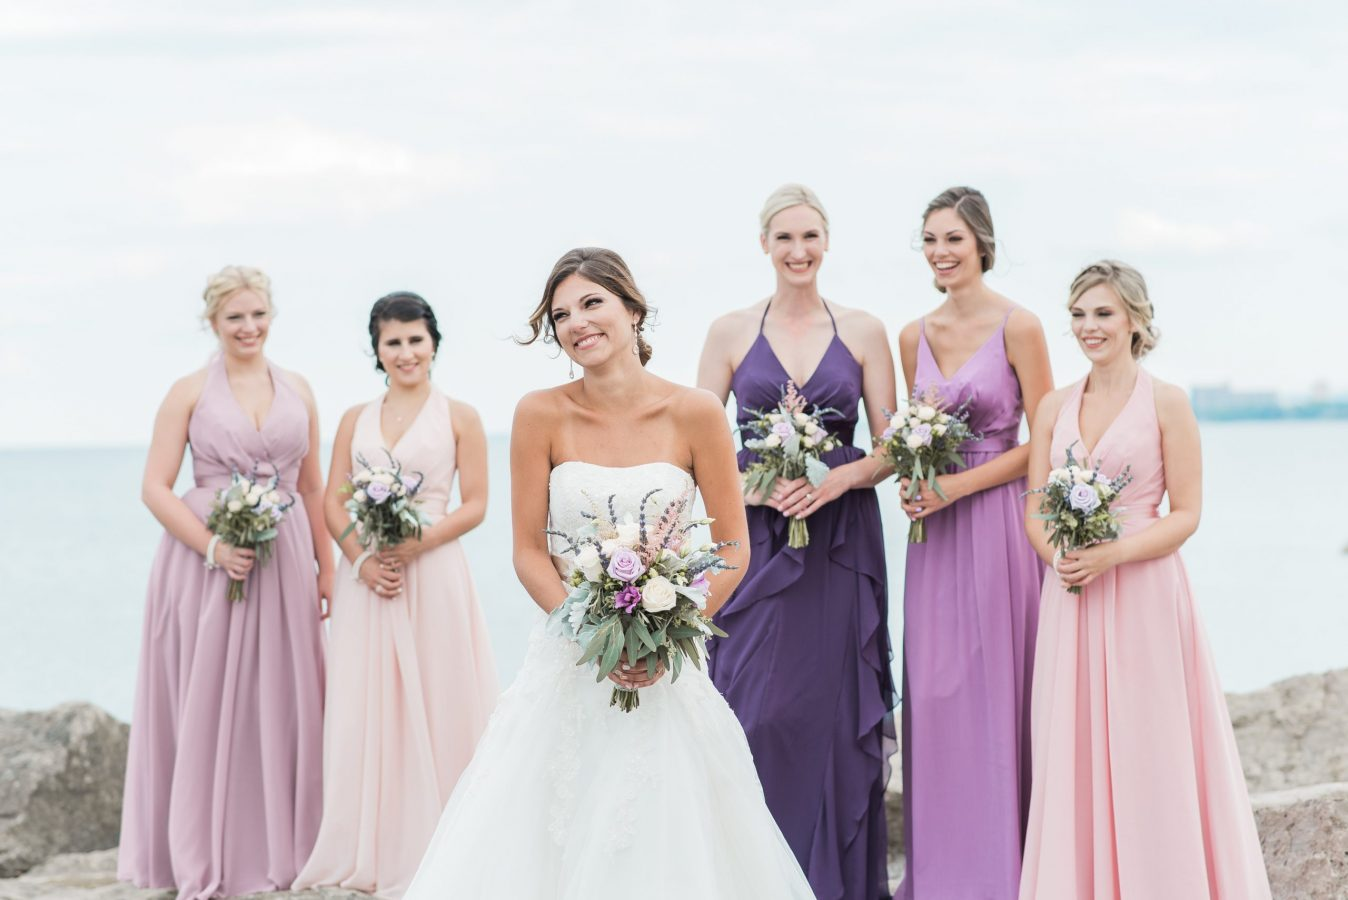 bridal party at lakeview burlington